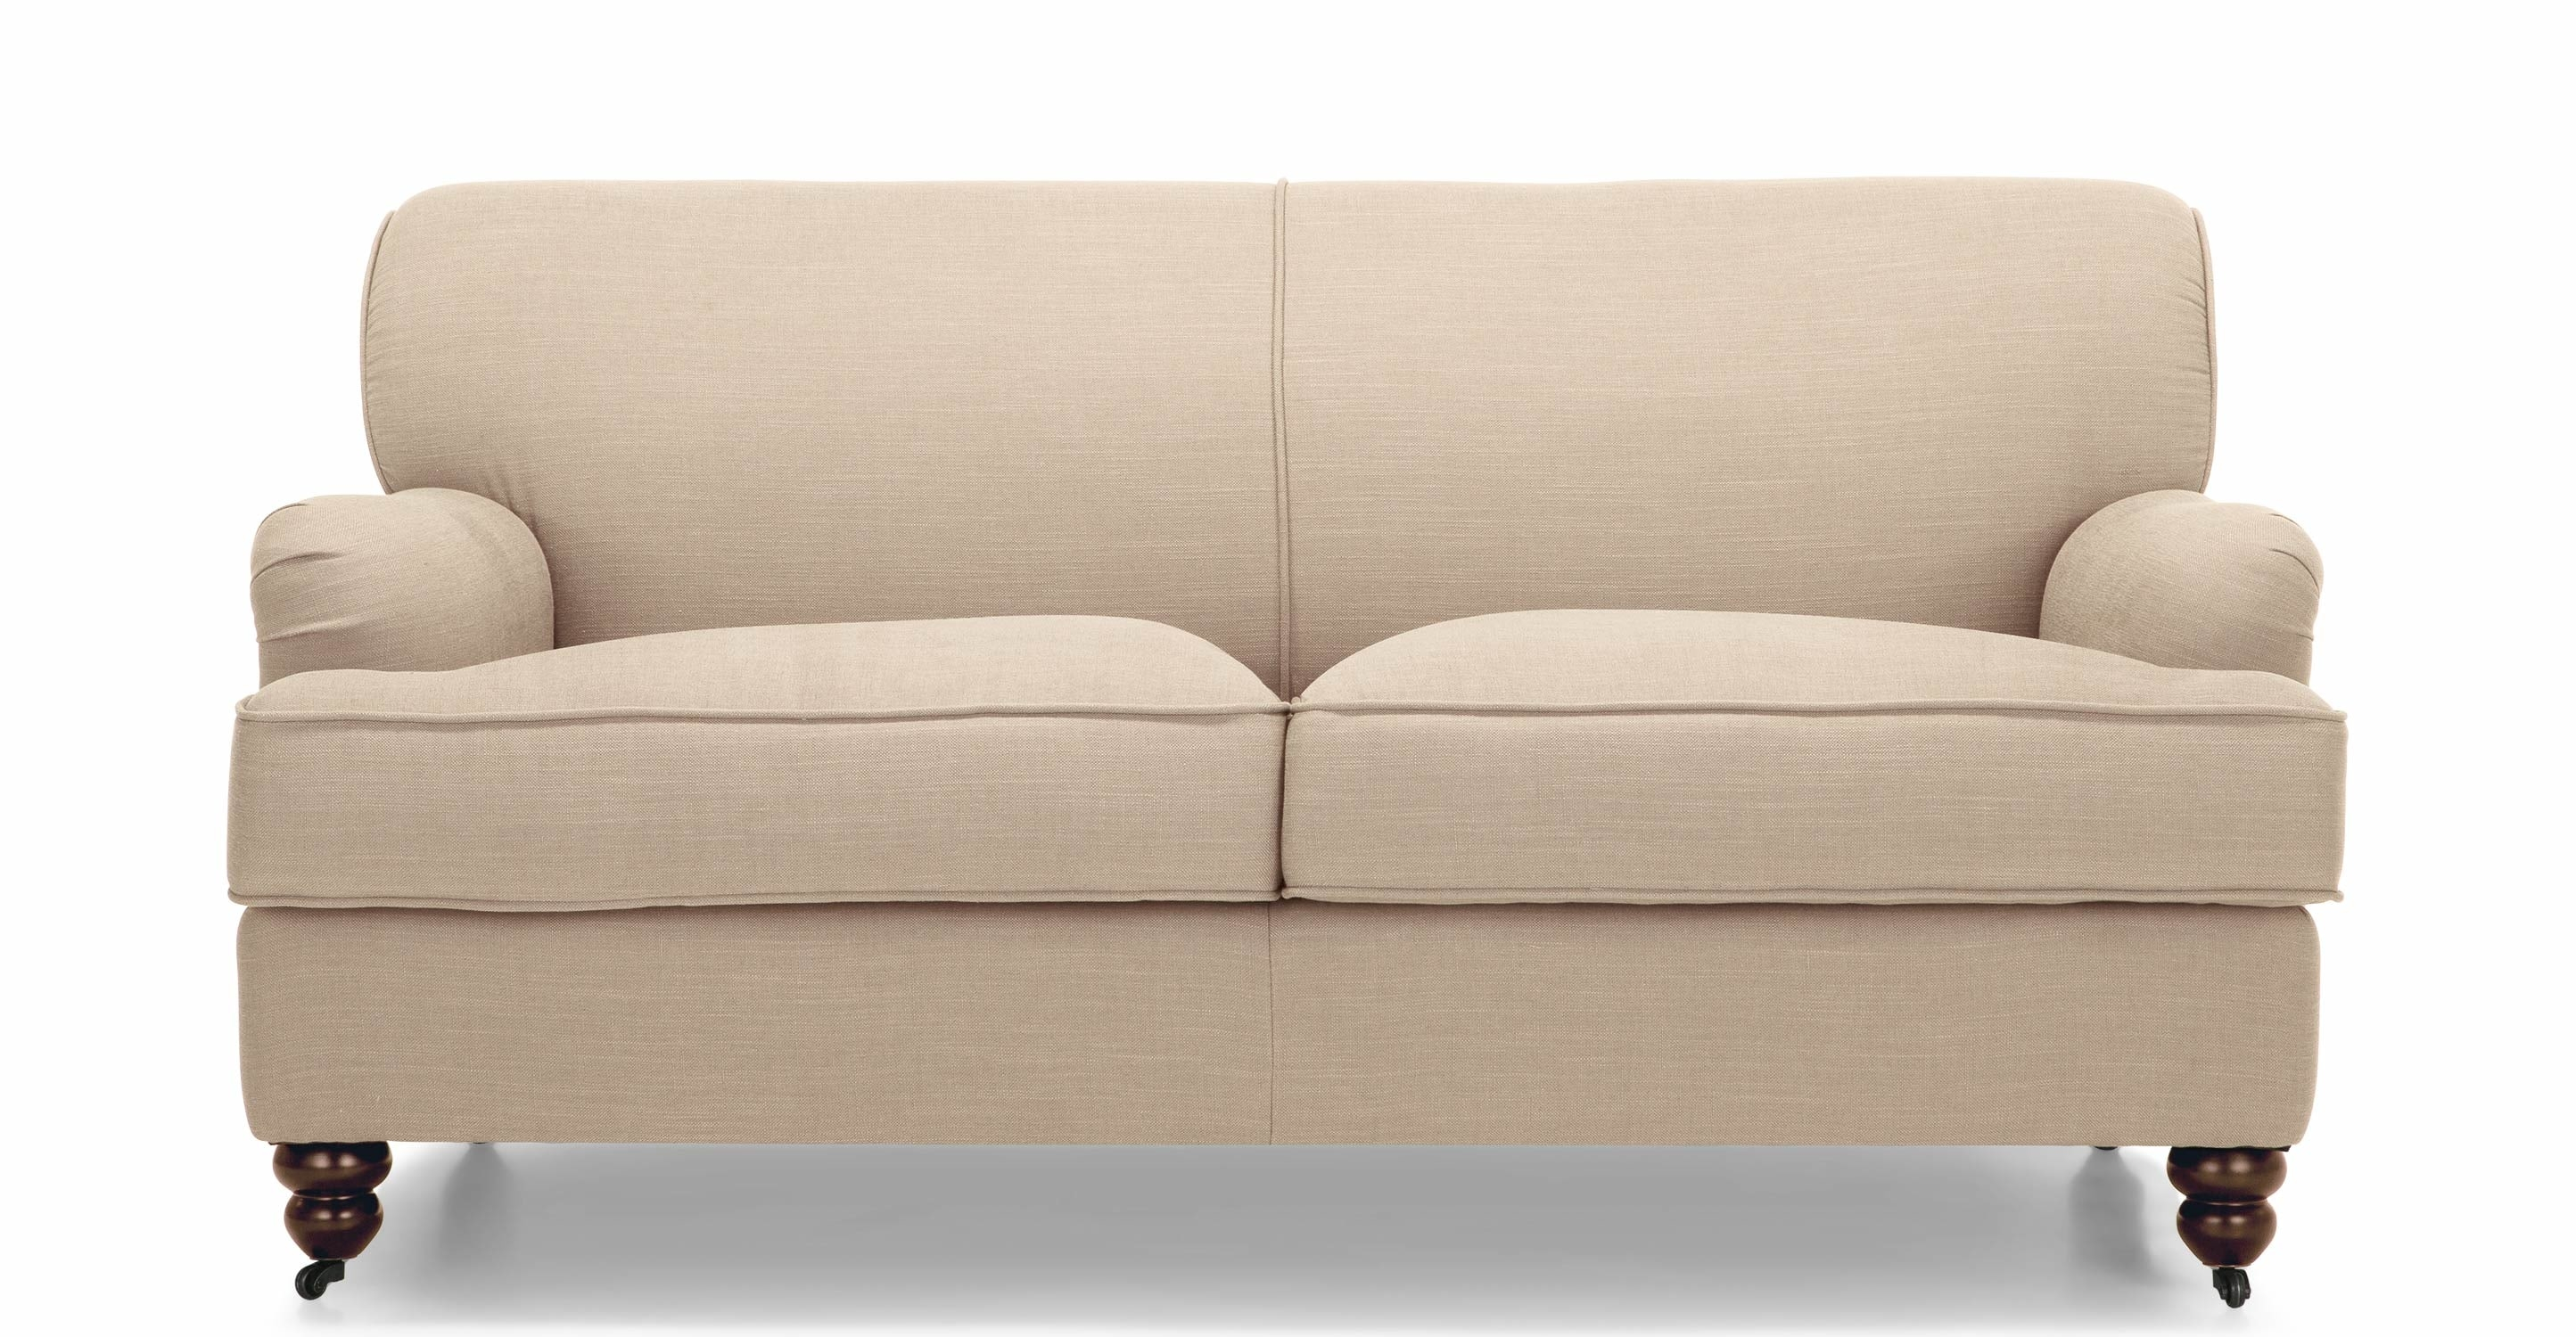 Orson 2 Seater Sofa Biscuit Beige Made Within 2 Seater Sofas (Image 12 of 15)